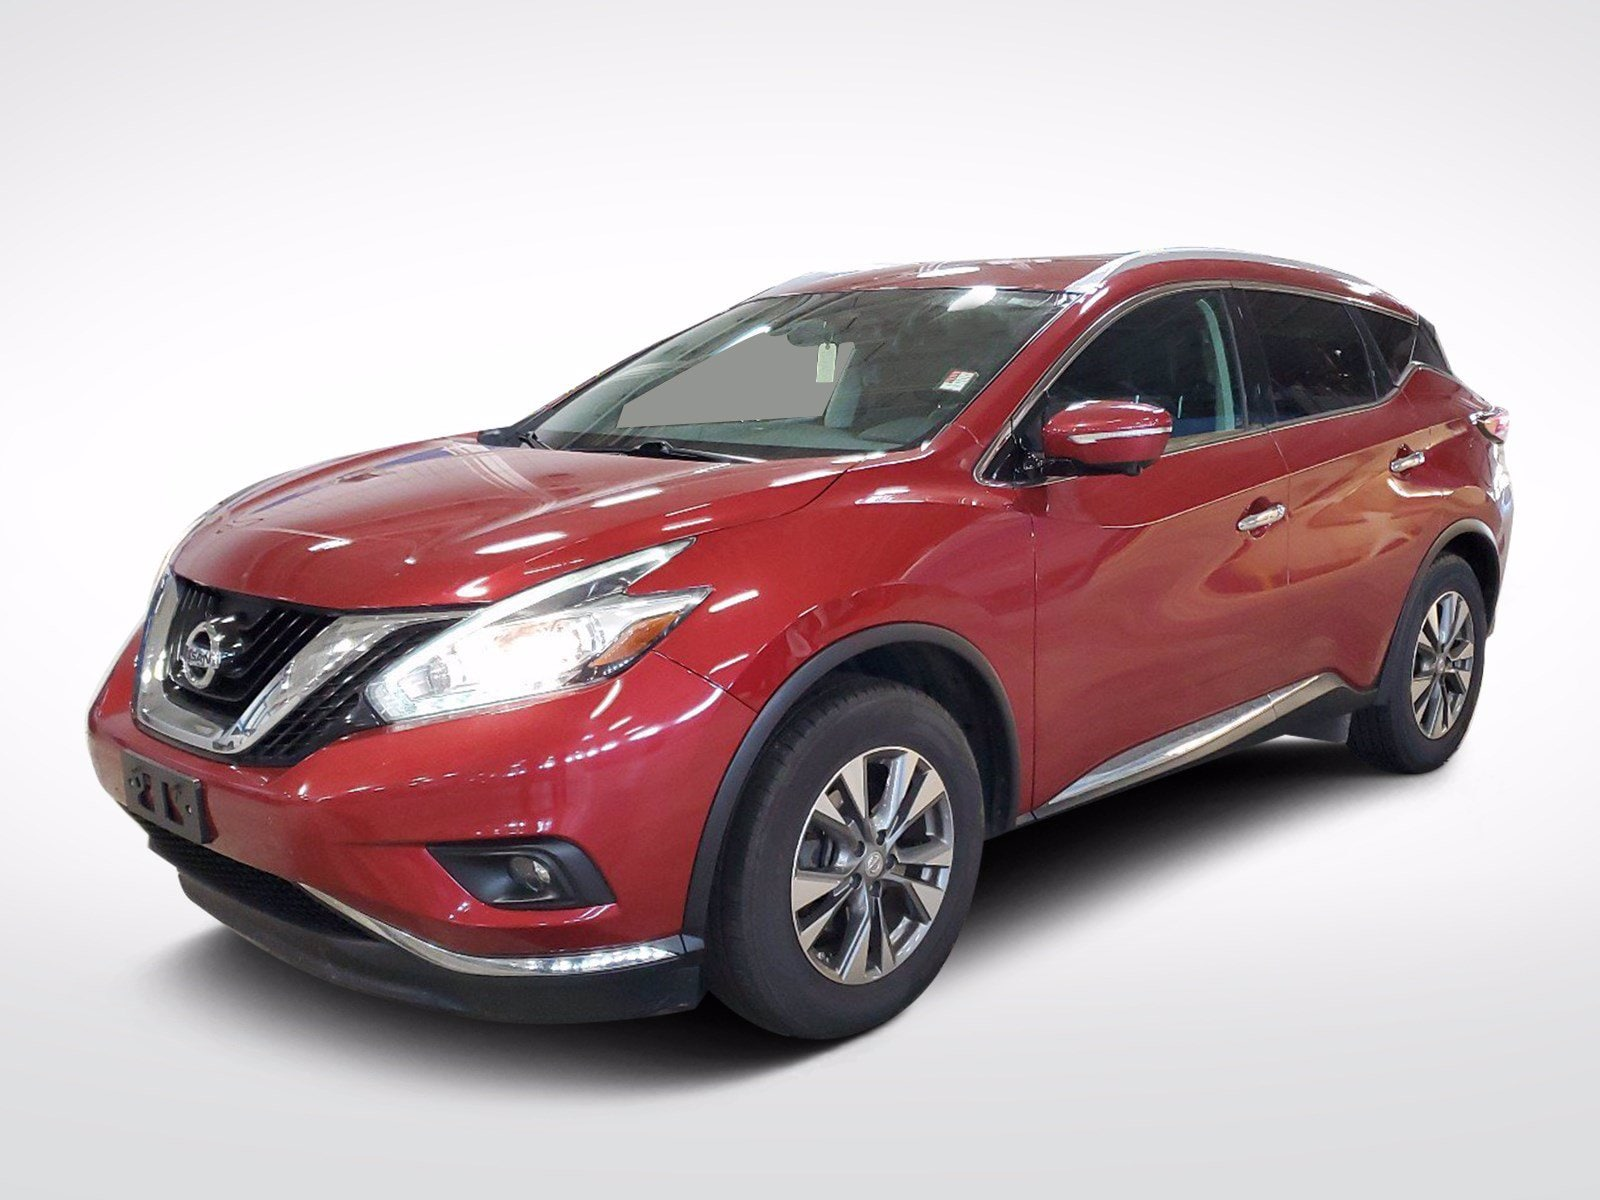 Used 2015 Nissan Murano SL with VIN 5N1AZ2MH6FN213743 for sale in Baxter, Minnesota